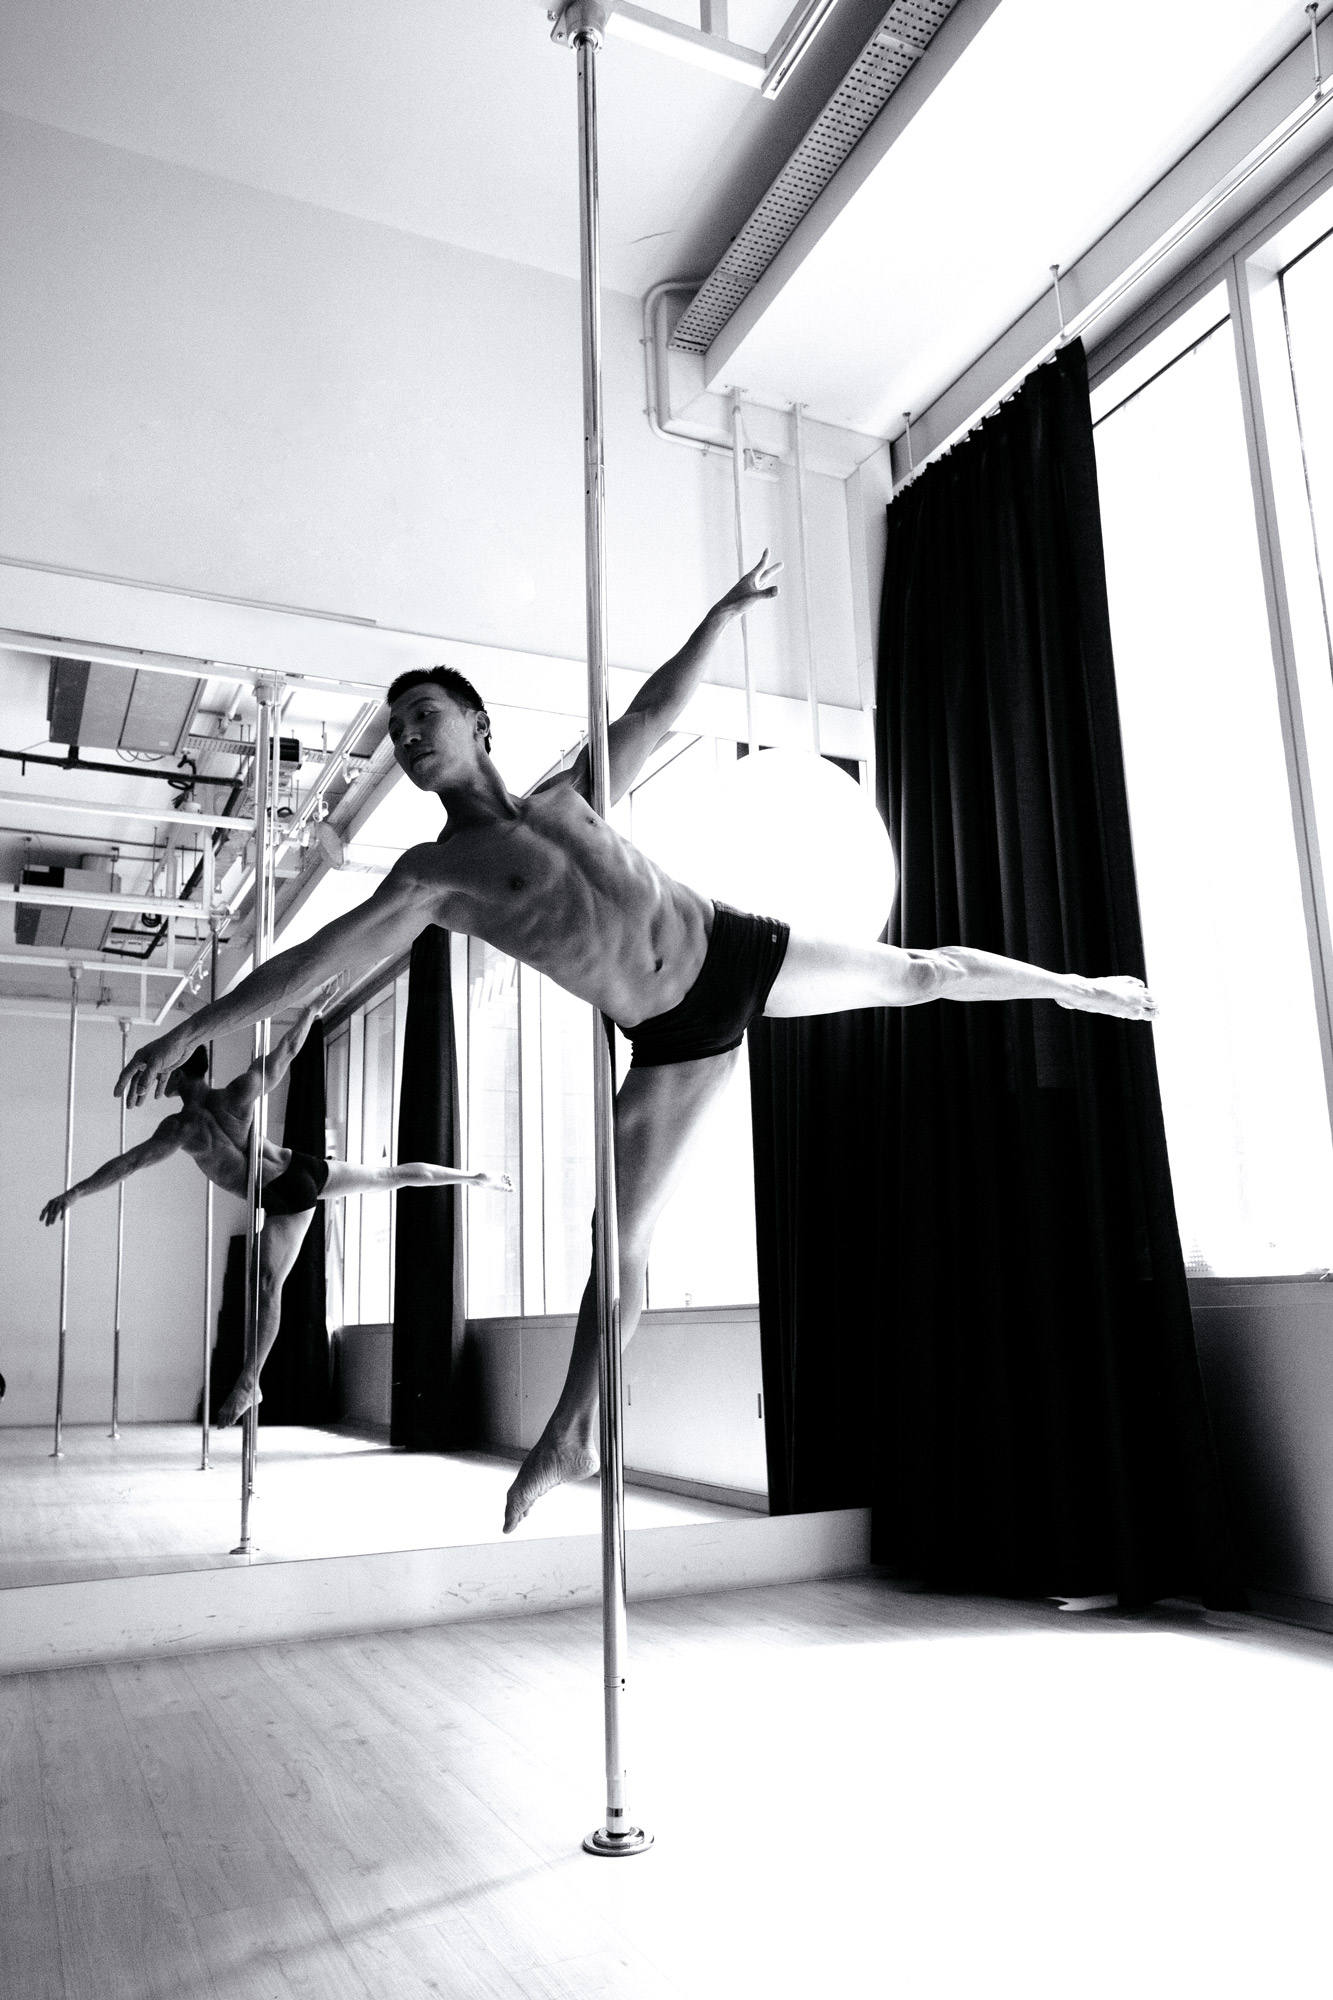 Pole dancing with Slap Dance Studio